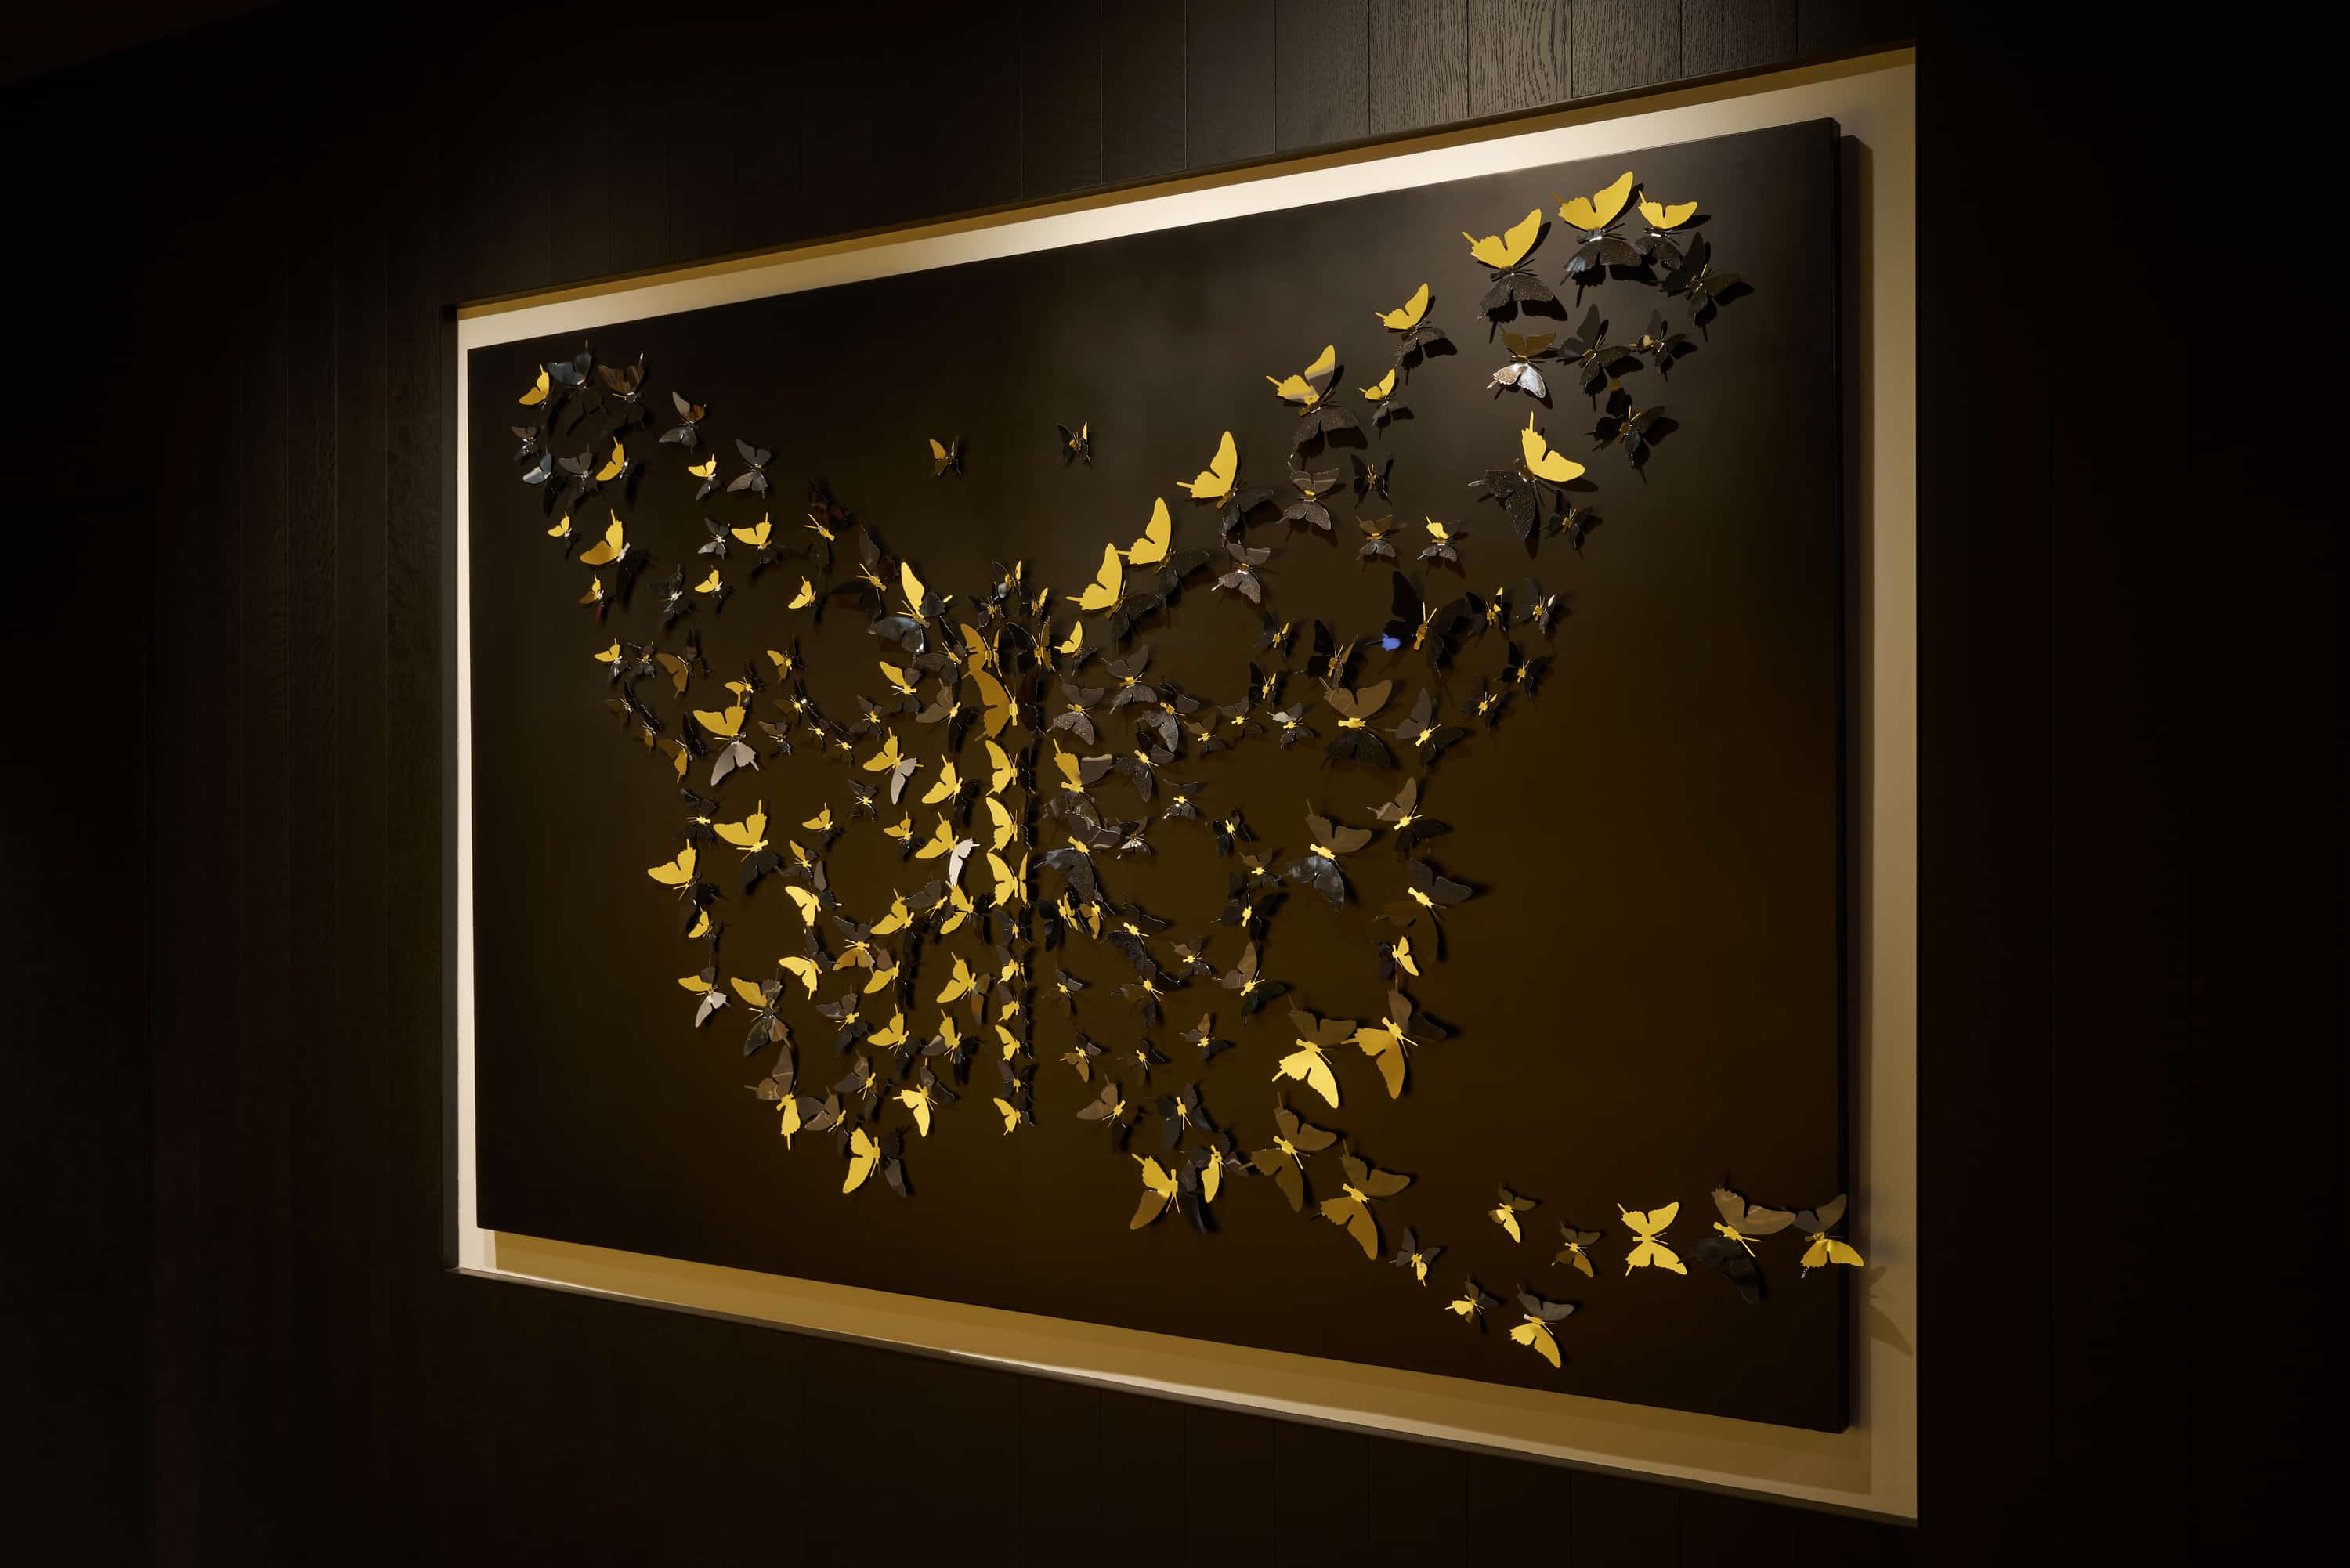 Butterfly wall art composed of smaller gold butterflies.